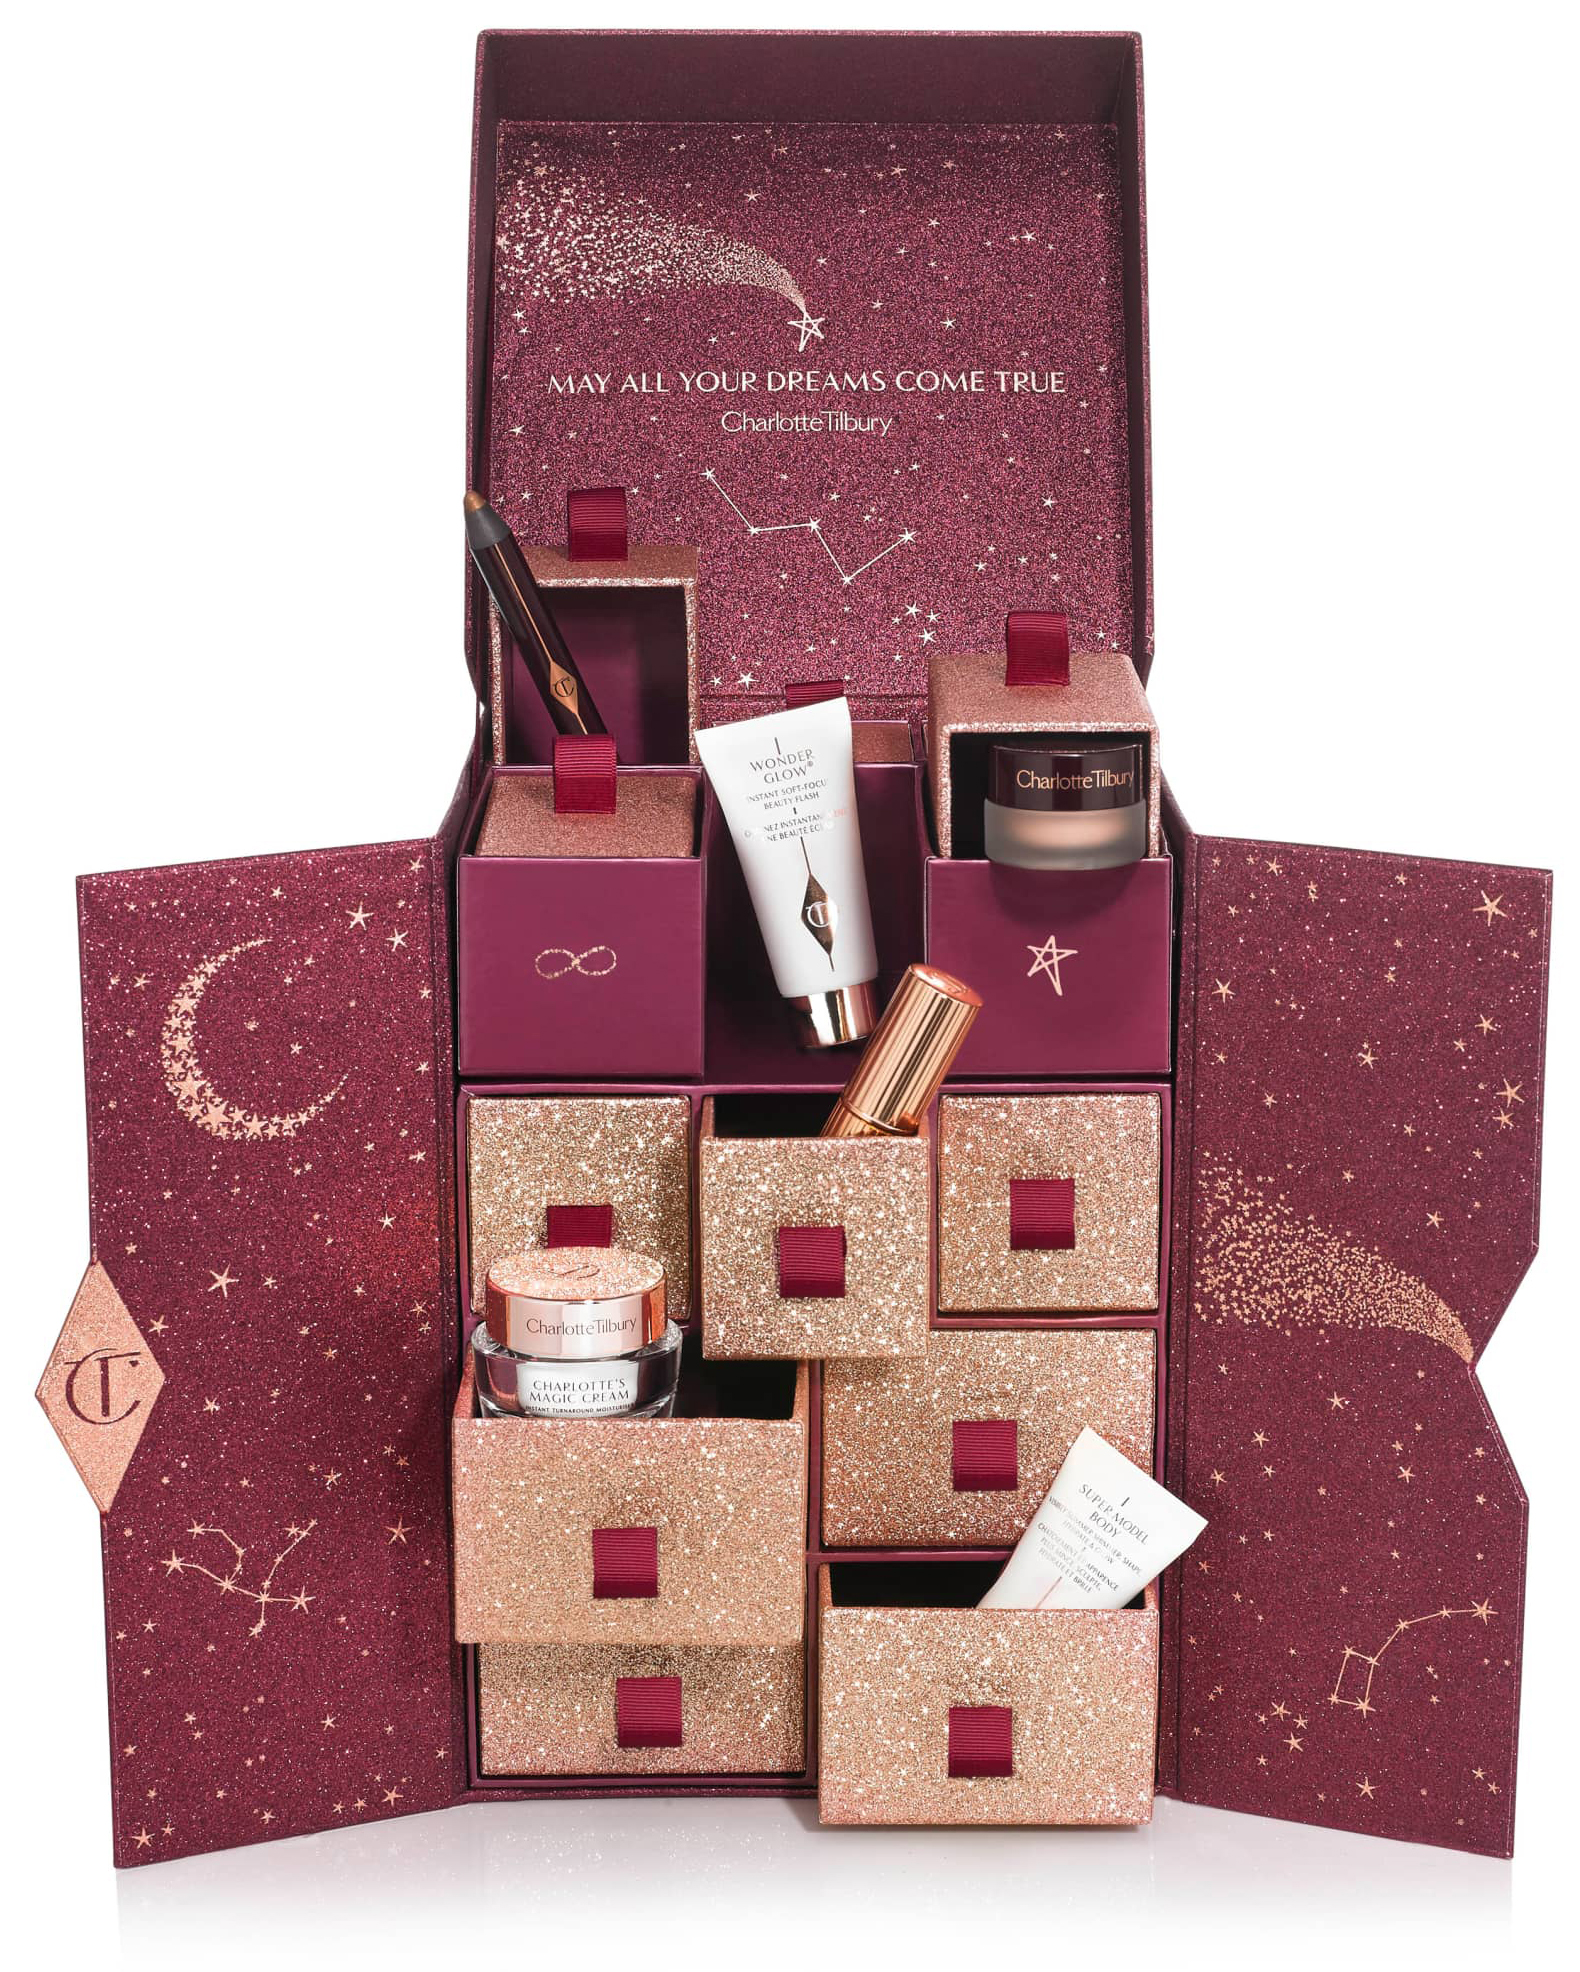 Gifts ideas for her christmas 2019 advent